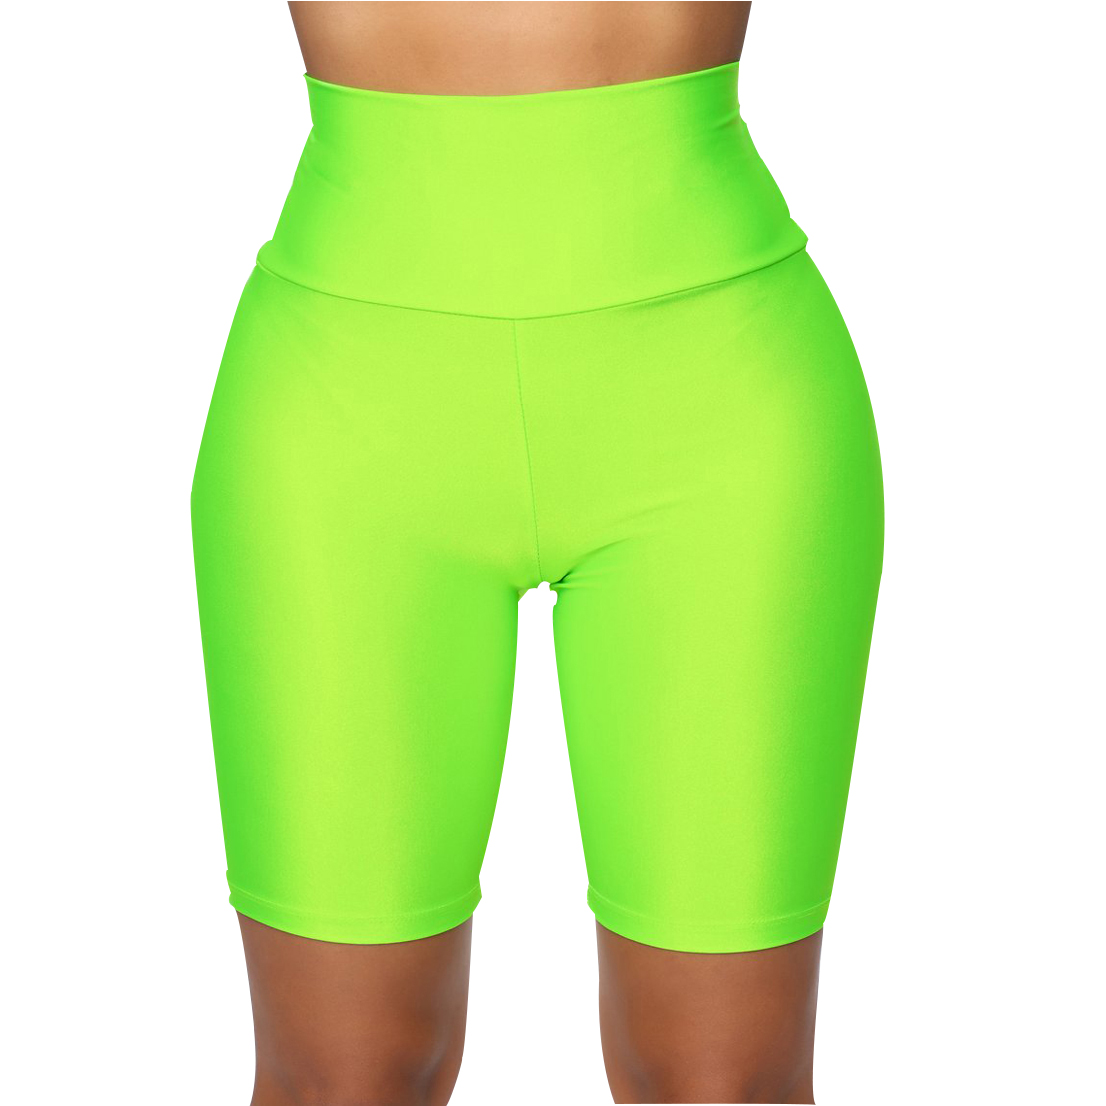 H58bbf430f2684324be45ad41d8bfdf8dN - Womens Plain Sports Gym Cycling Skinny Fit High Waist Shorts Lady Summer Casual Solid Basic Stretchy Bodycon Short Pants